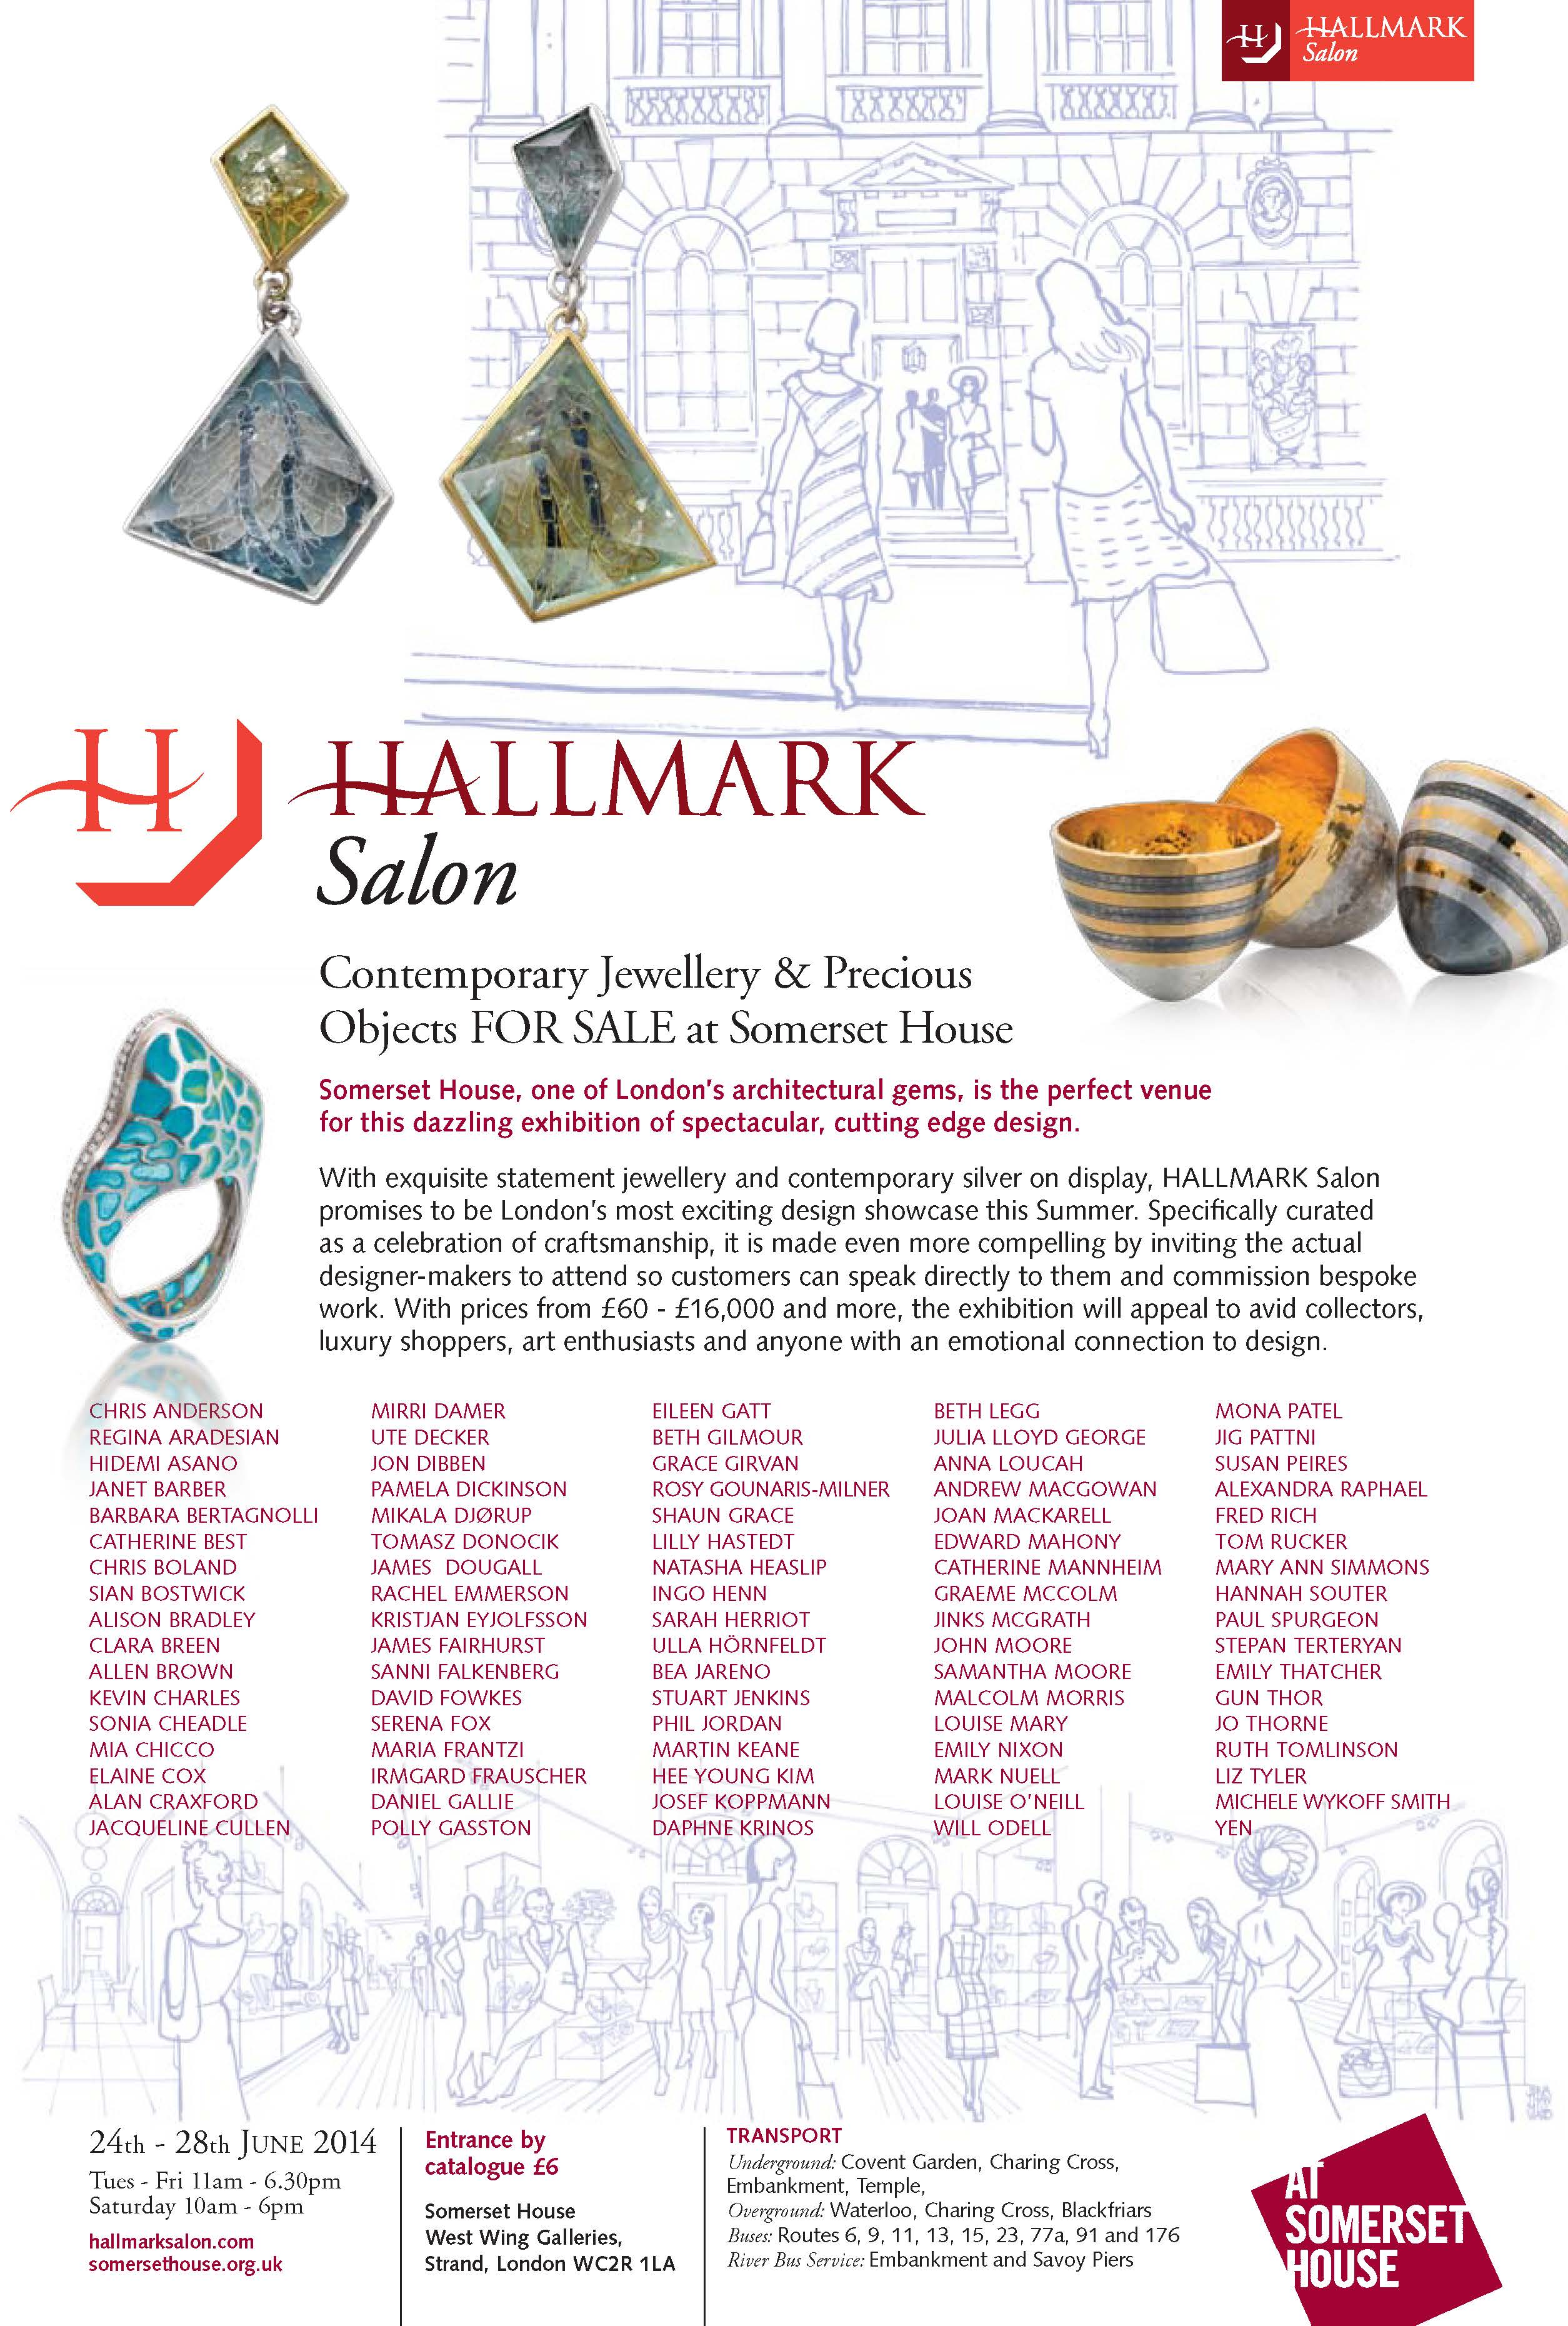 HALLMARK Salon 2014 email flyer